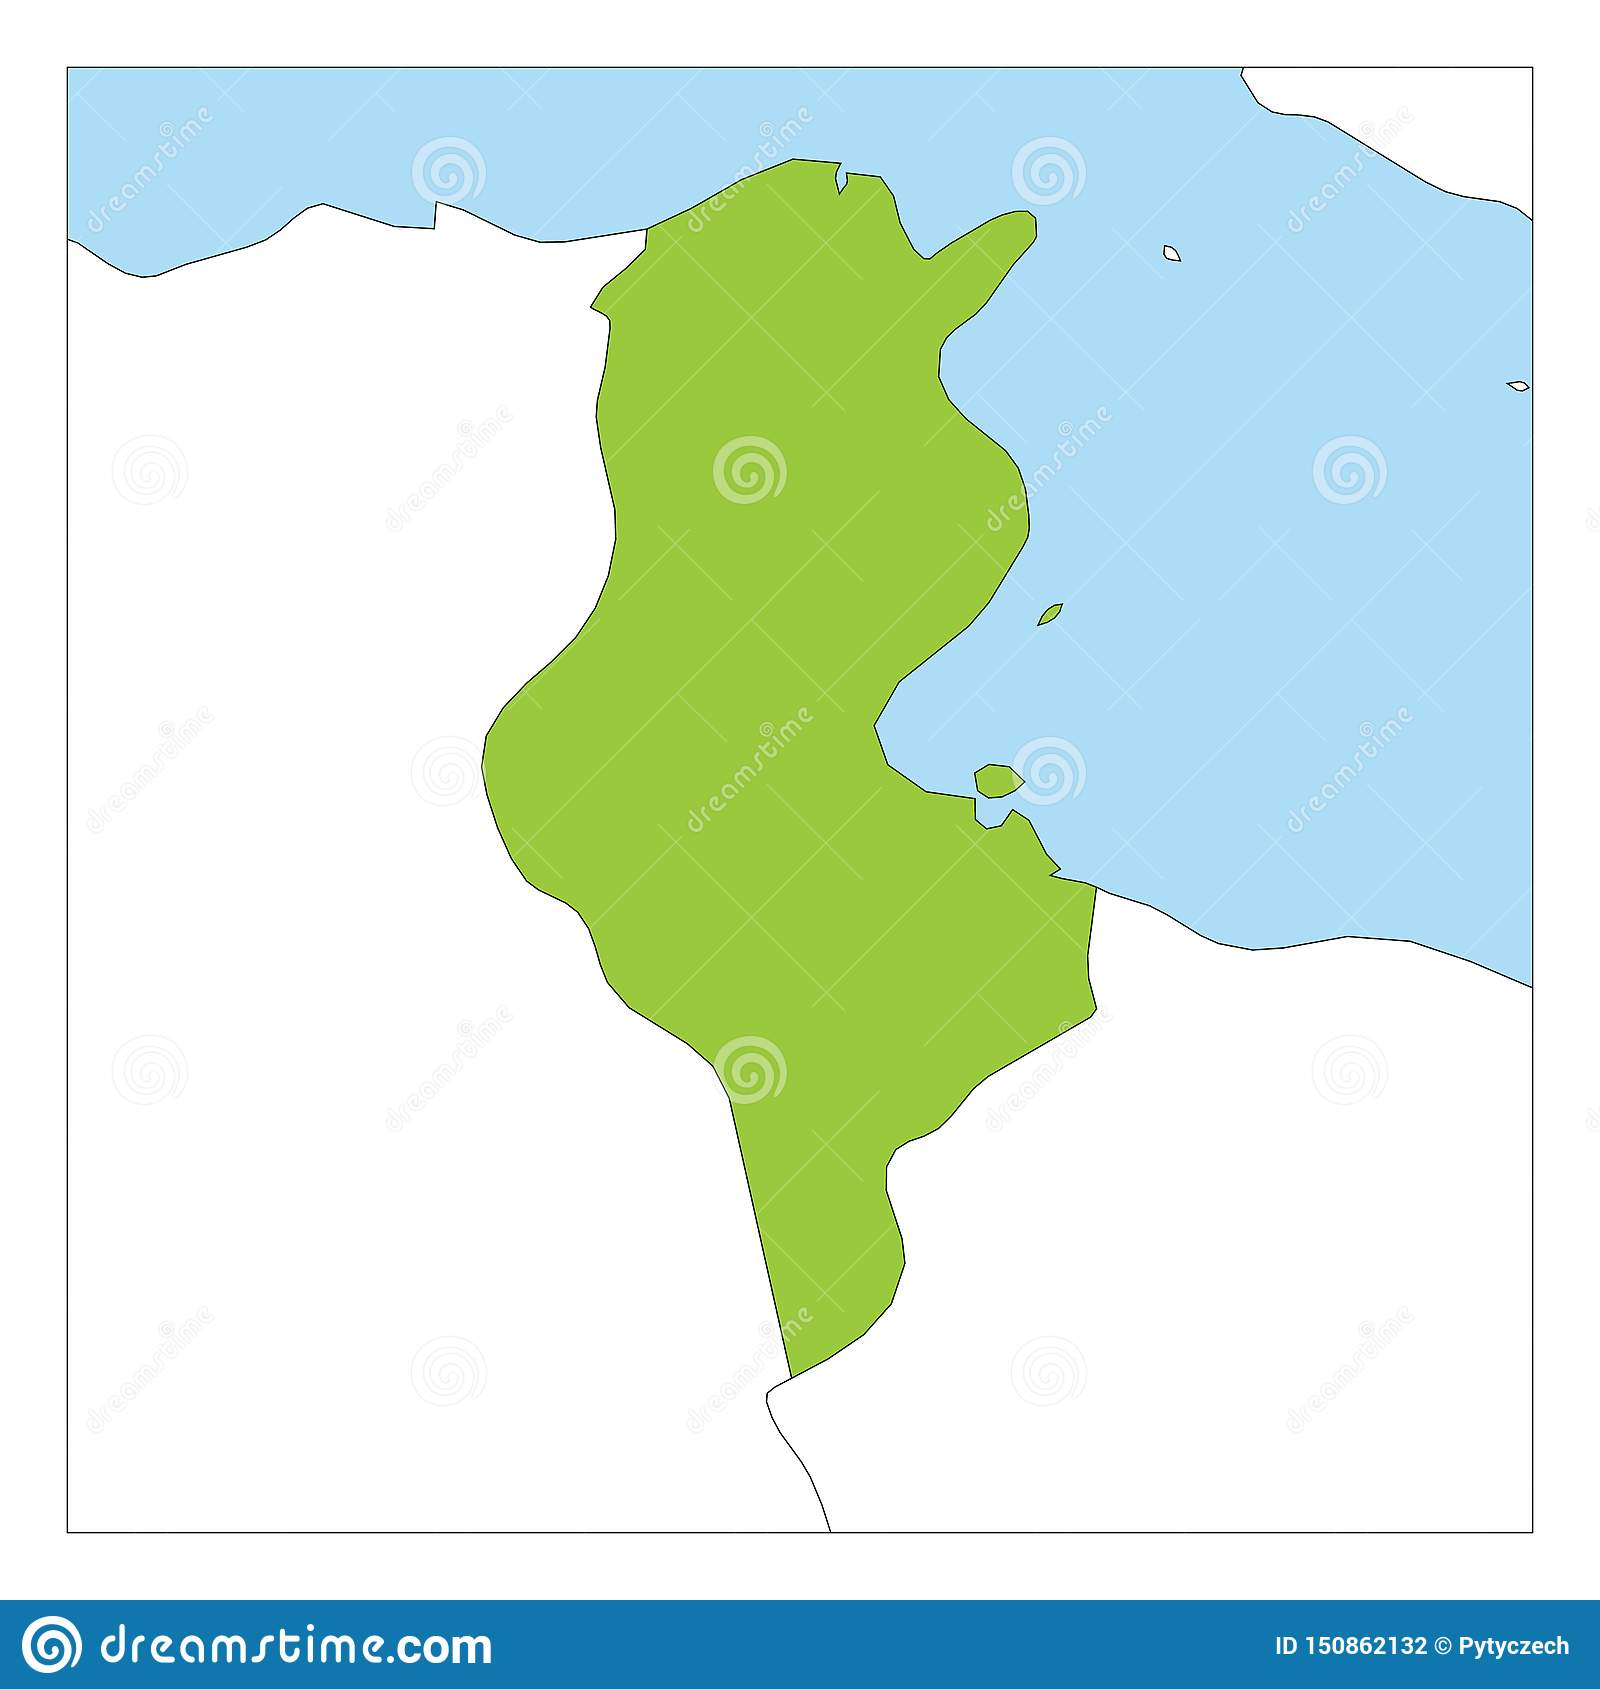 Picture of: Map Of Tunisia Green Highlighted With Neighbor Countries Stock Vector Illustration Of African Neighbor 150862132